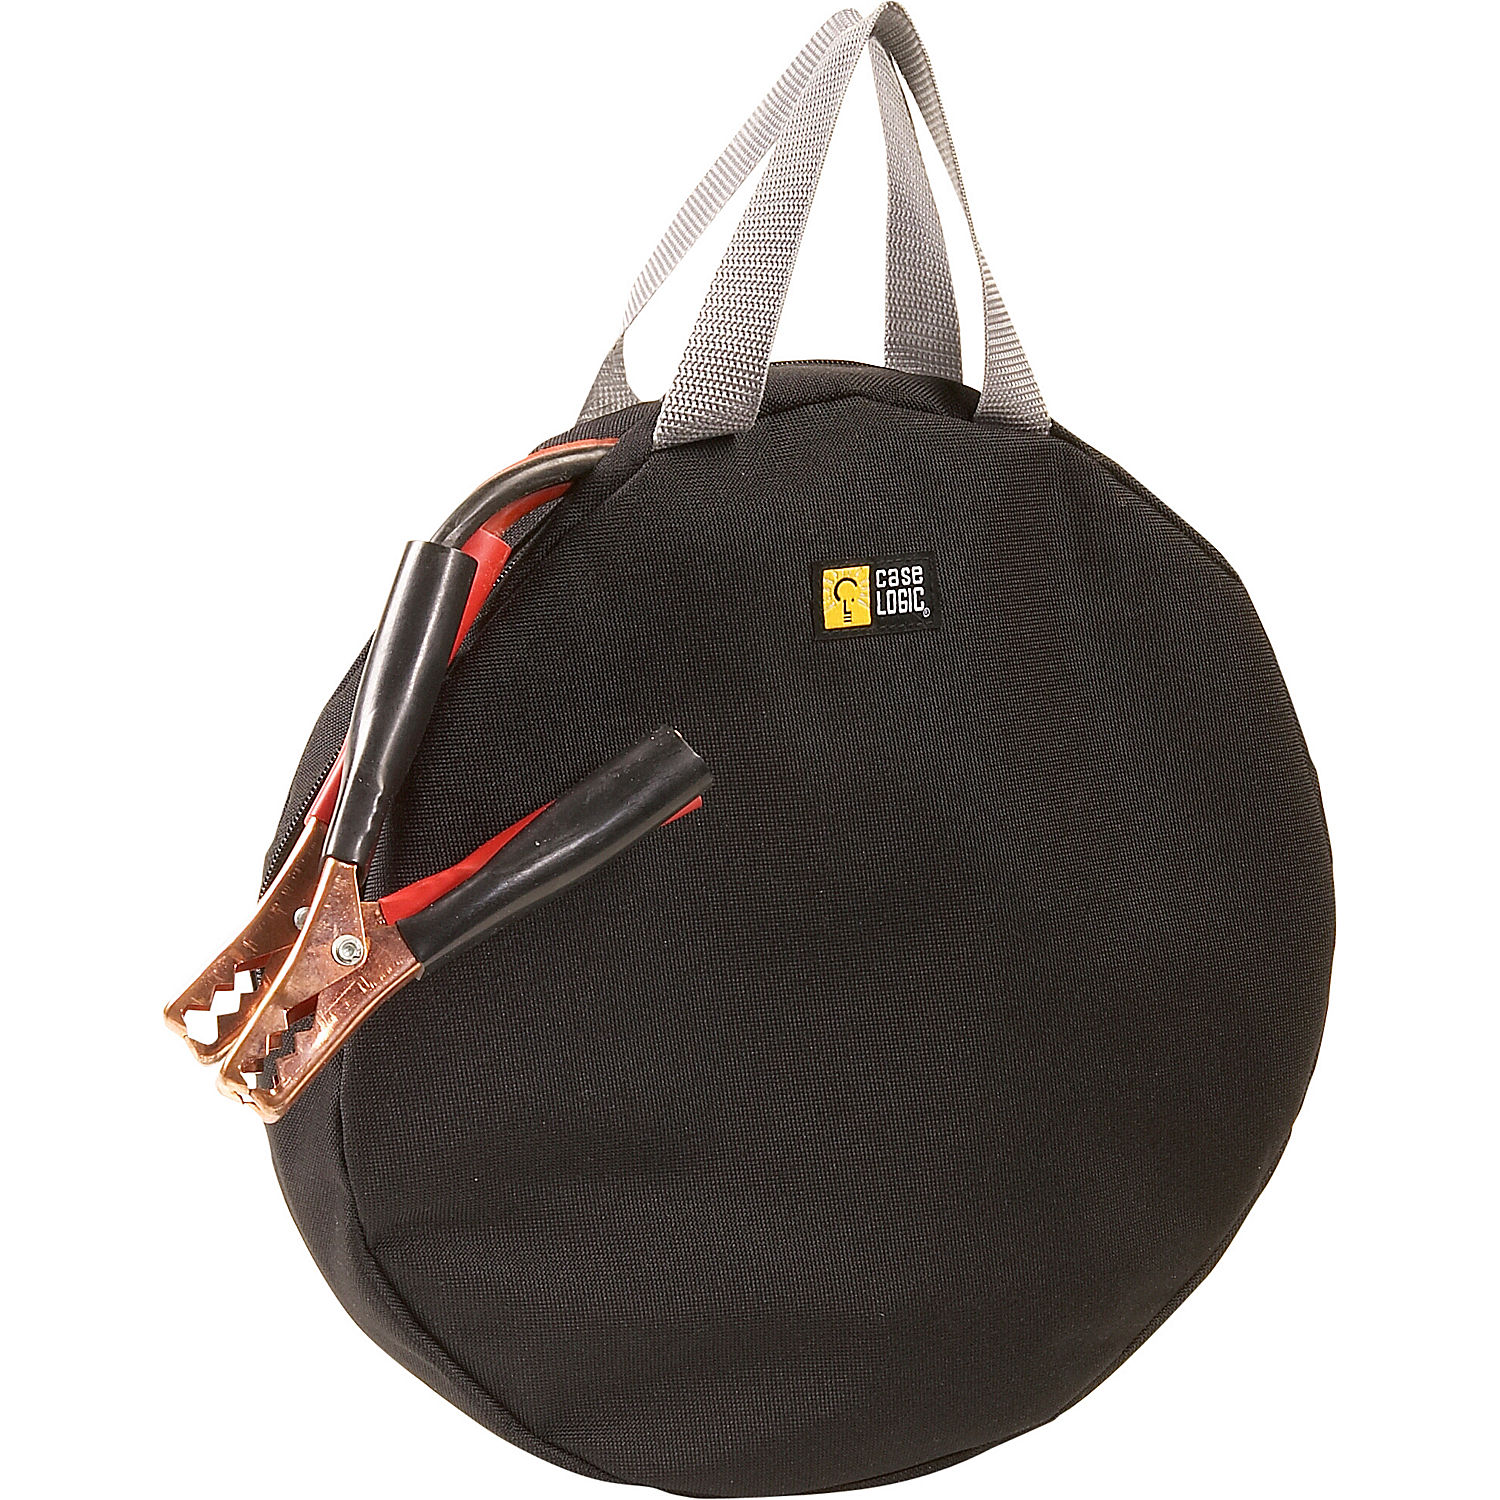 Jumper Cable Bag : Case logic jumper cable ebags